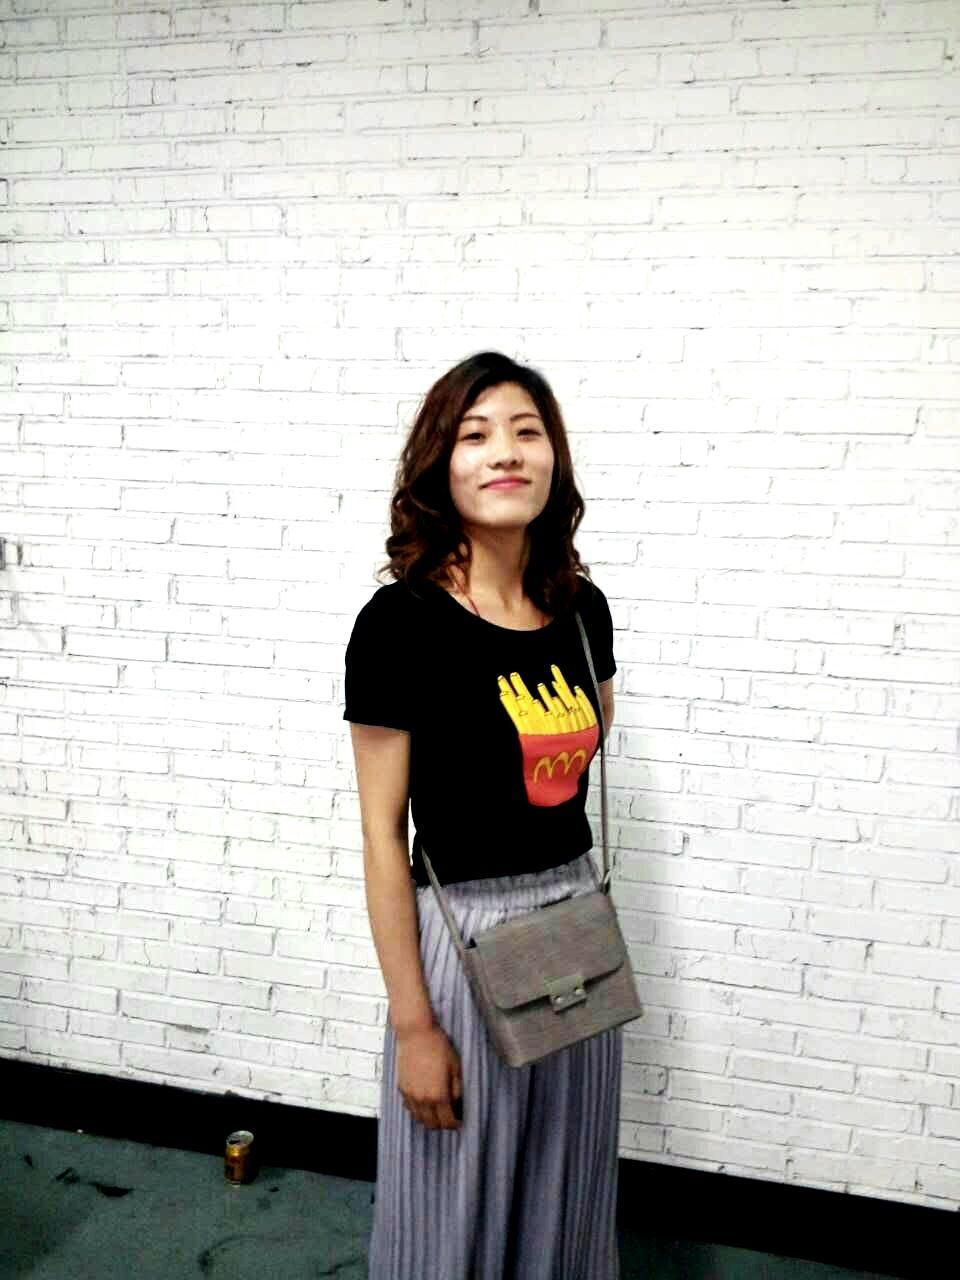 looking at camera, real people, one person, wall - building feature, standing, brick wall, front view, three quarter length, portrait, young adult, mid adult, leisure activity, lifestyles, young women, casual clothing, long hair, smiling, day, happiness, indoors, beautiful woman, people